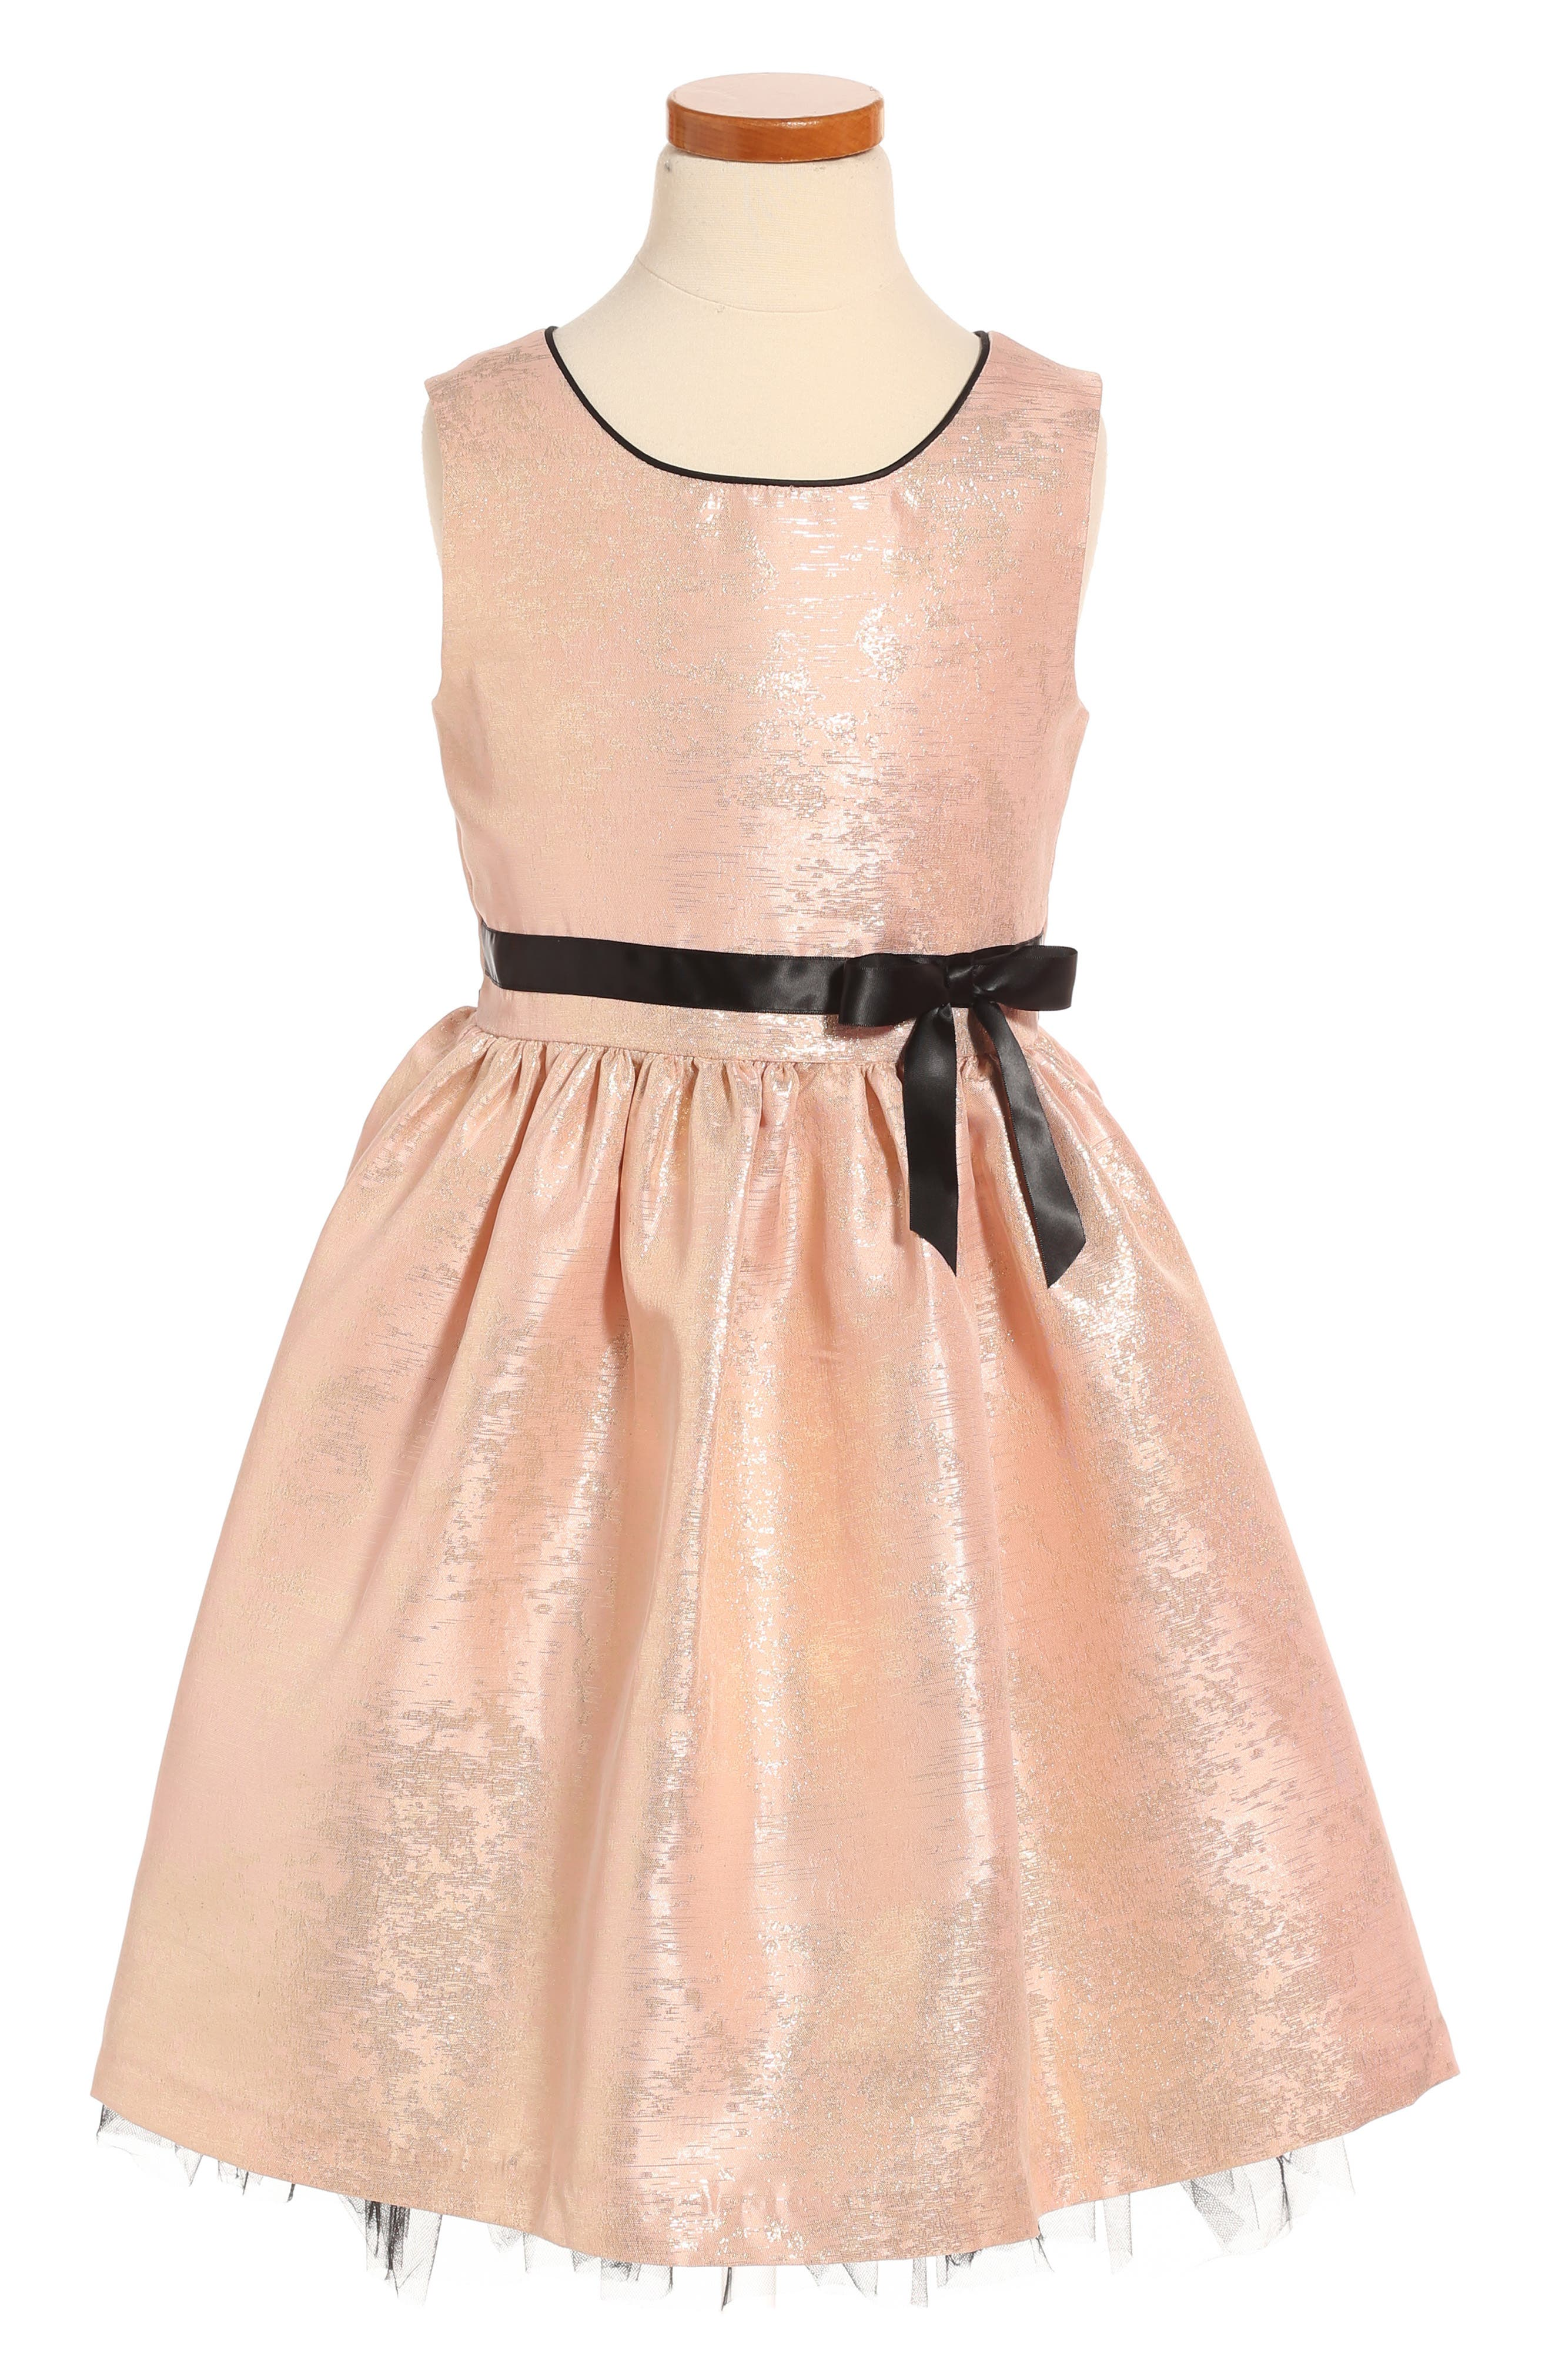 Frais Metallic Shimmer Sleeveless Dress (Toddler Girls, Little Girls & Big Girls)